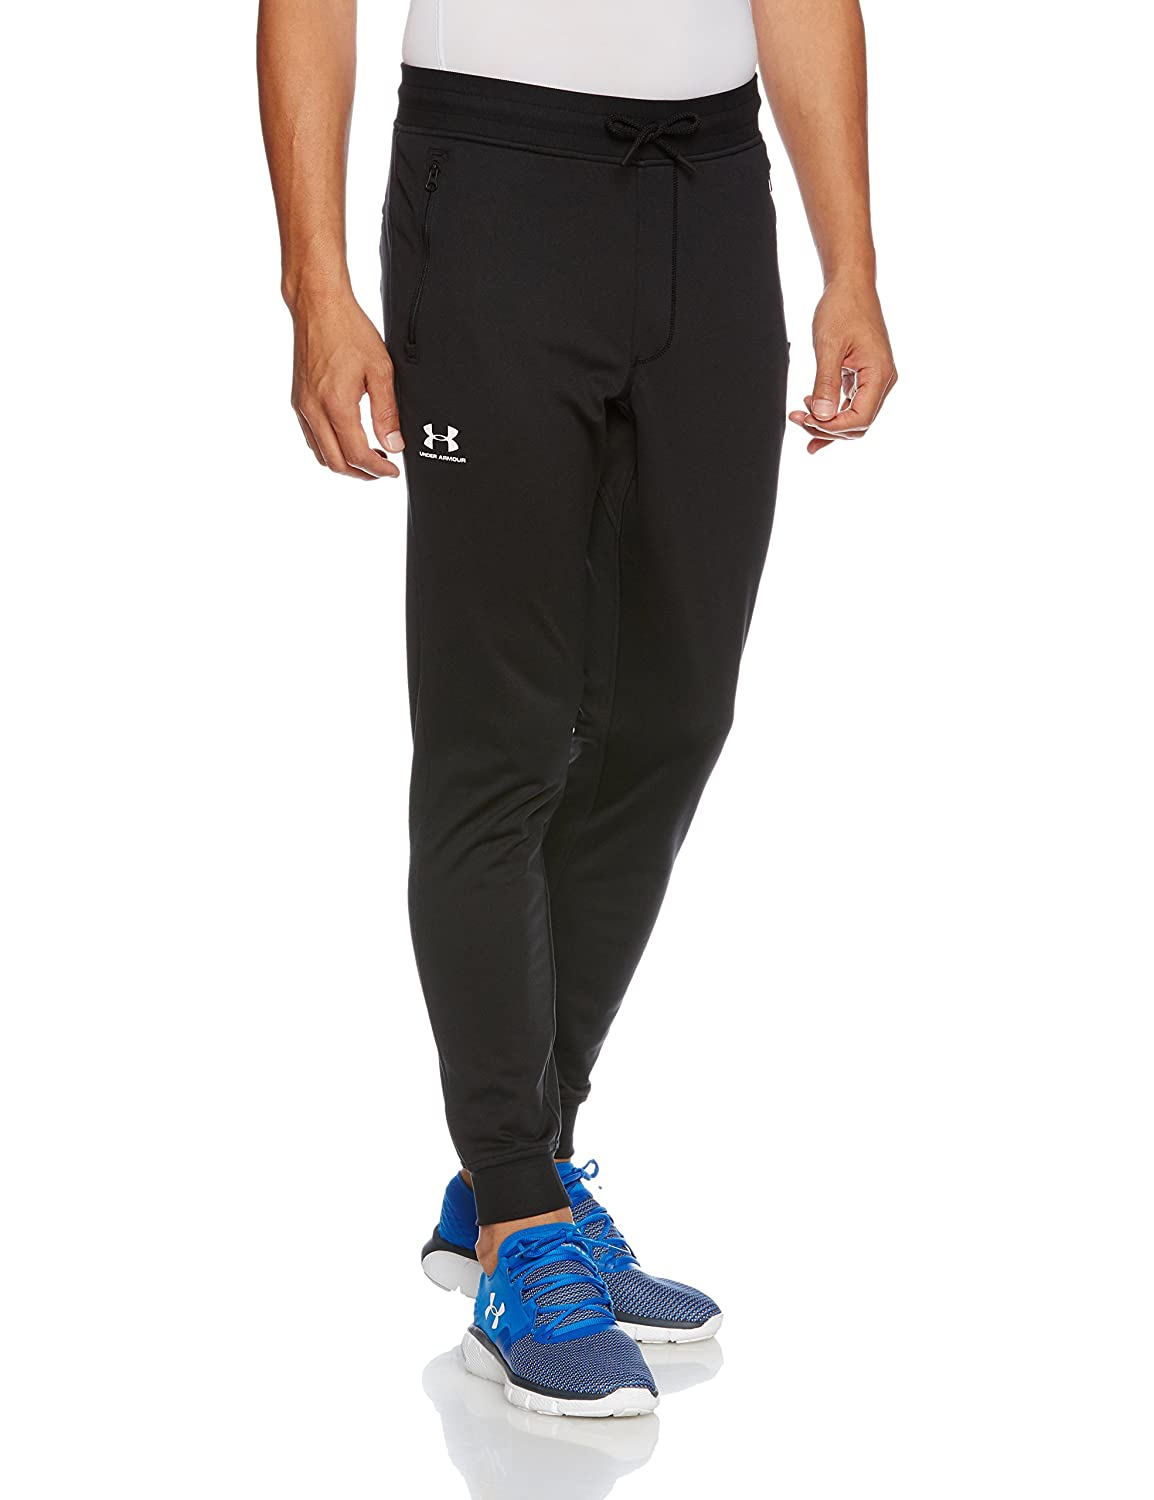 Under Armour Men's Sportstyle Joggers Under Armour Apparel 1290261